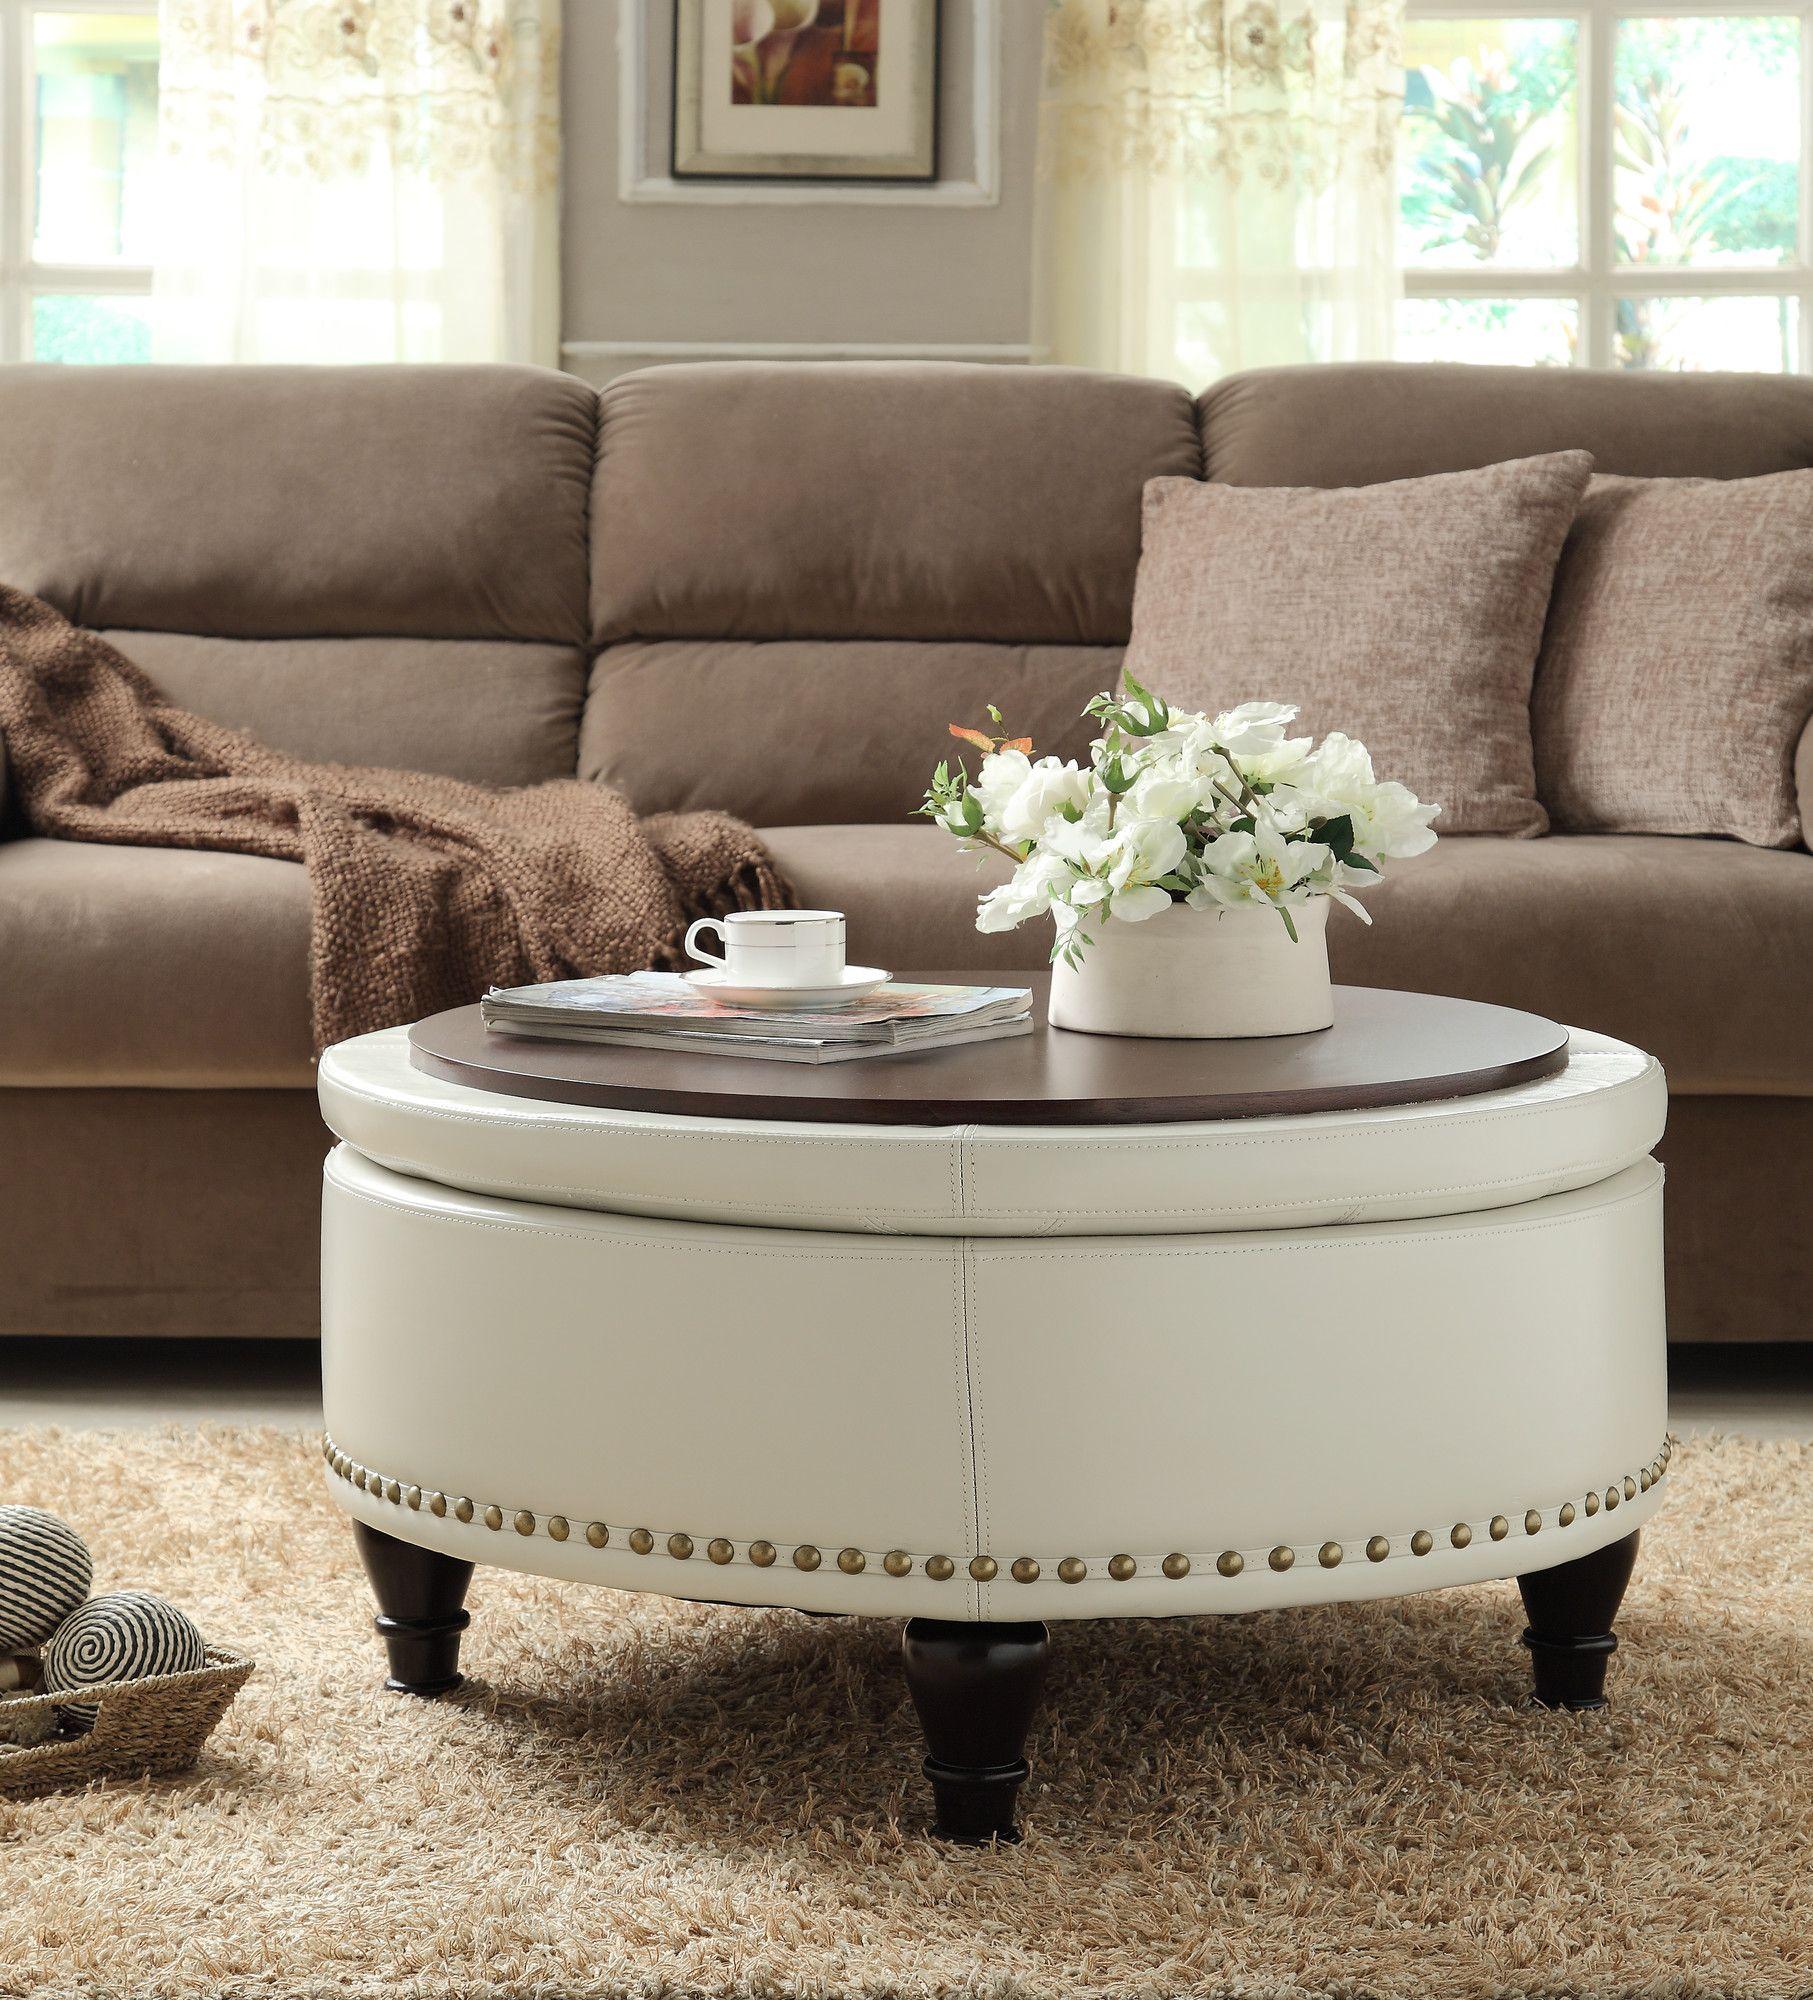 10 kid friendly ottoman coffee table options for your living room